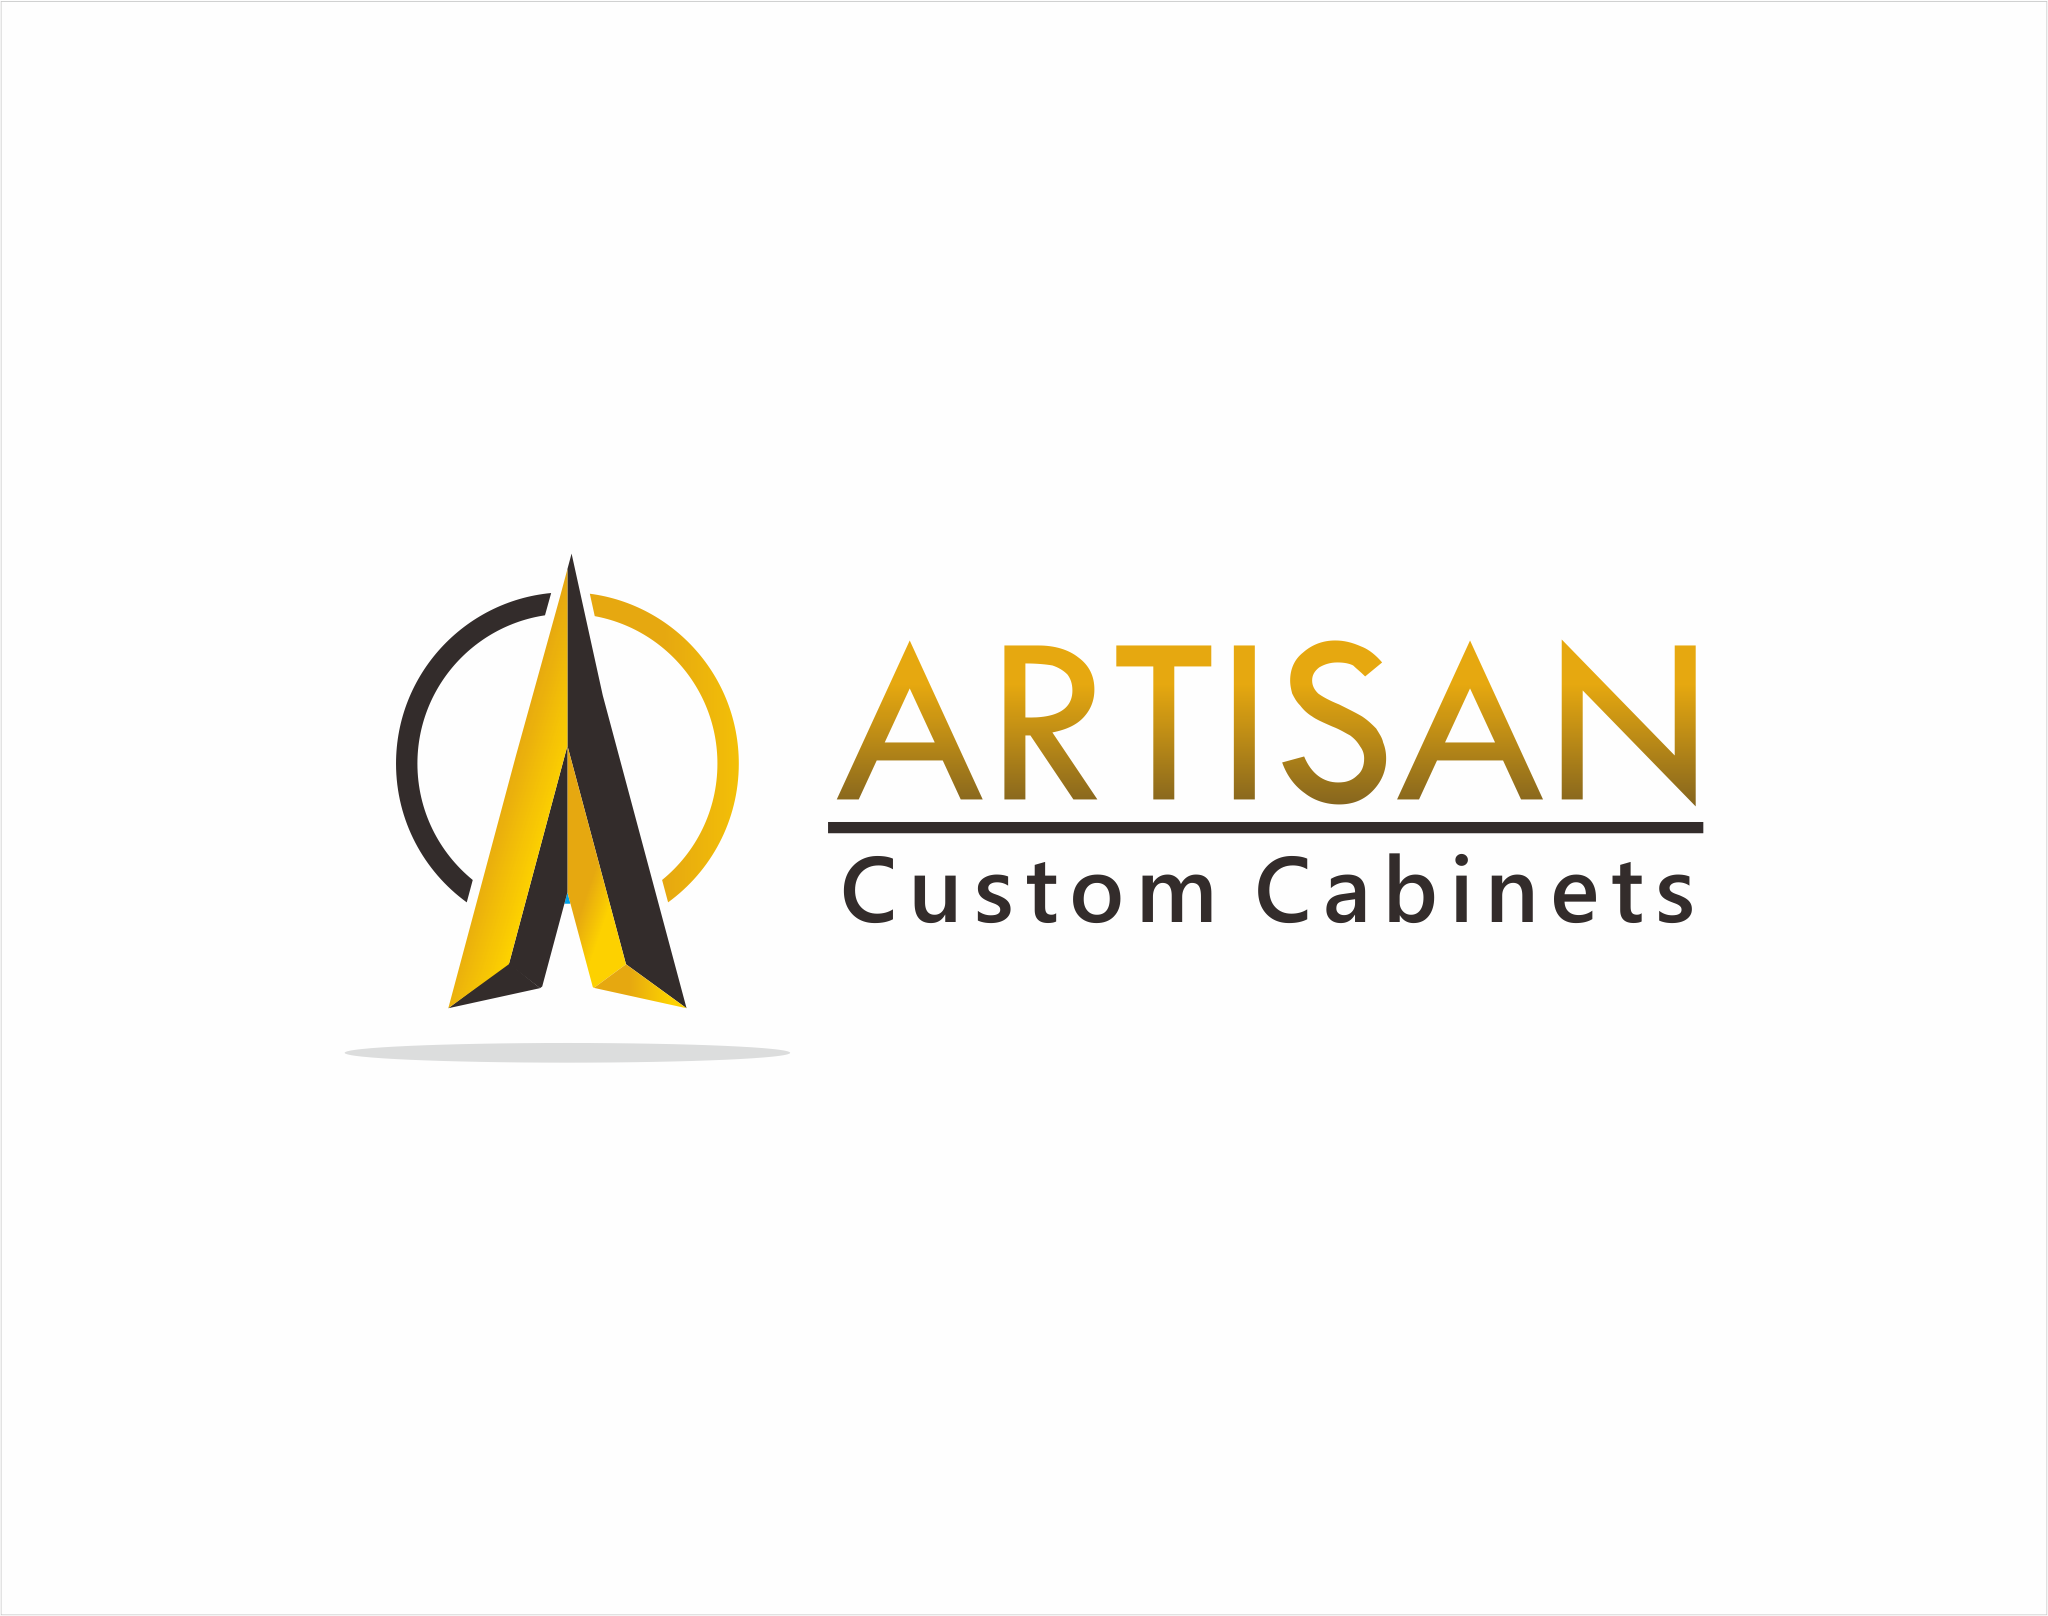 Logo Design by Armada Jamaluddin - Entry No. 215 in the Logo Design Contest Creative Logo Design for Artisan Custom Cabinets.